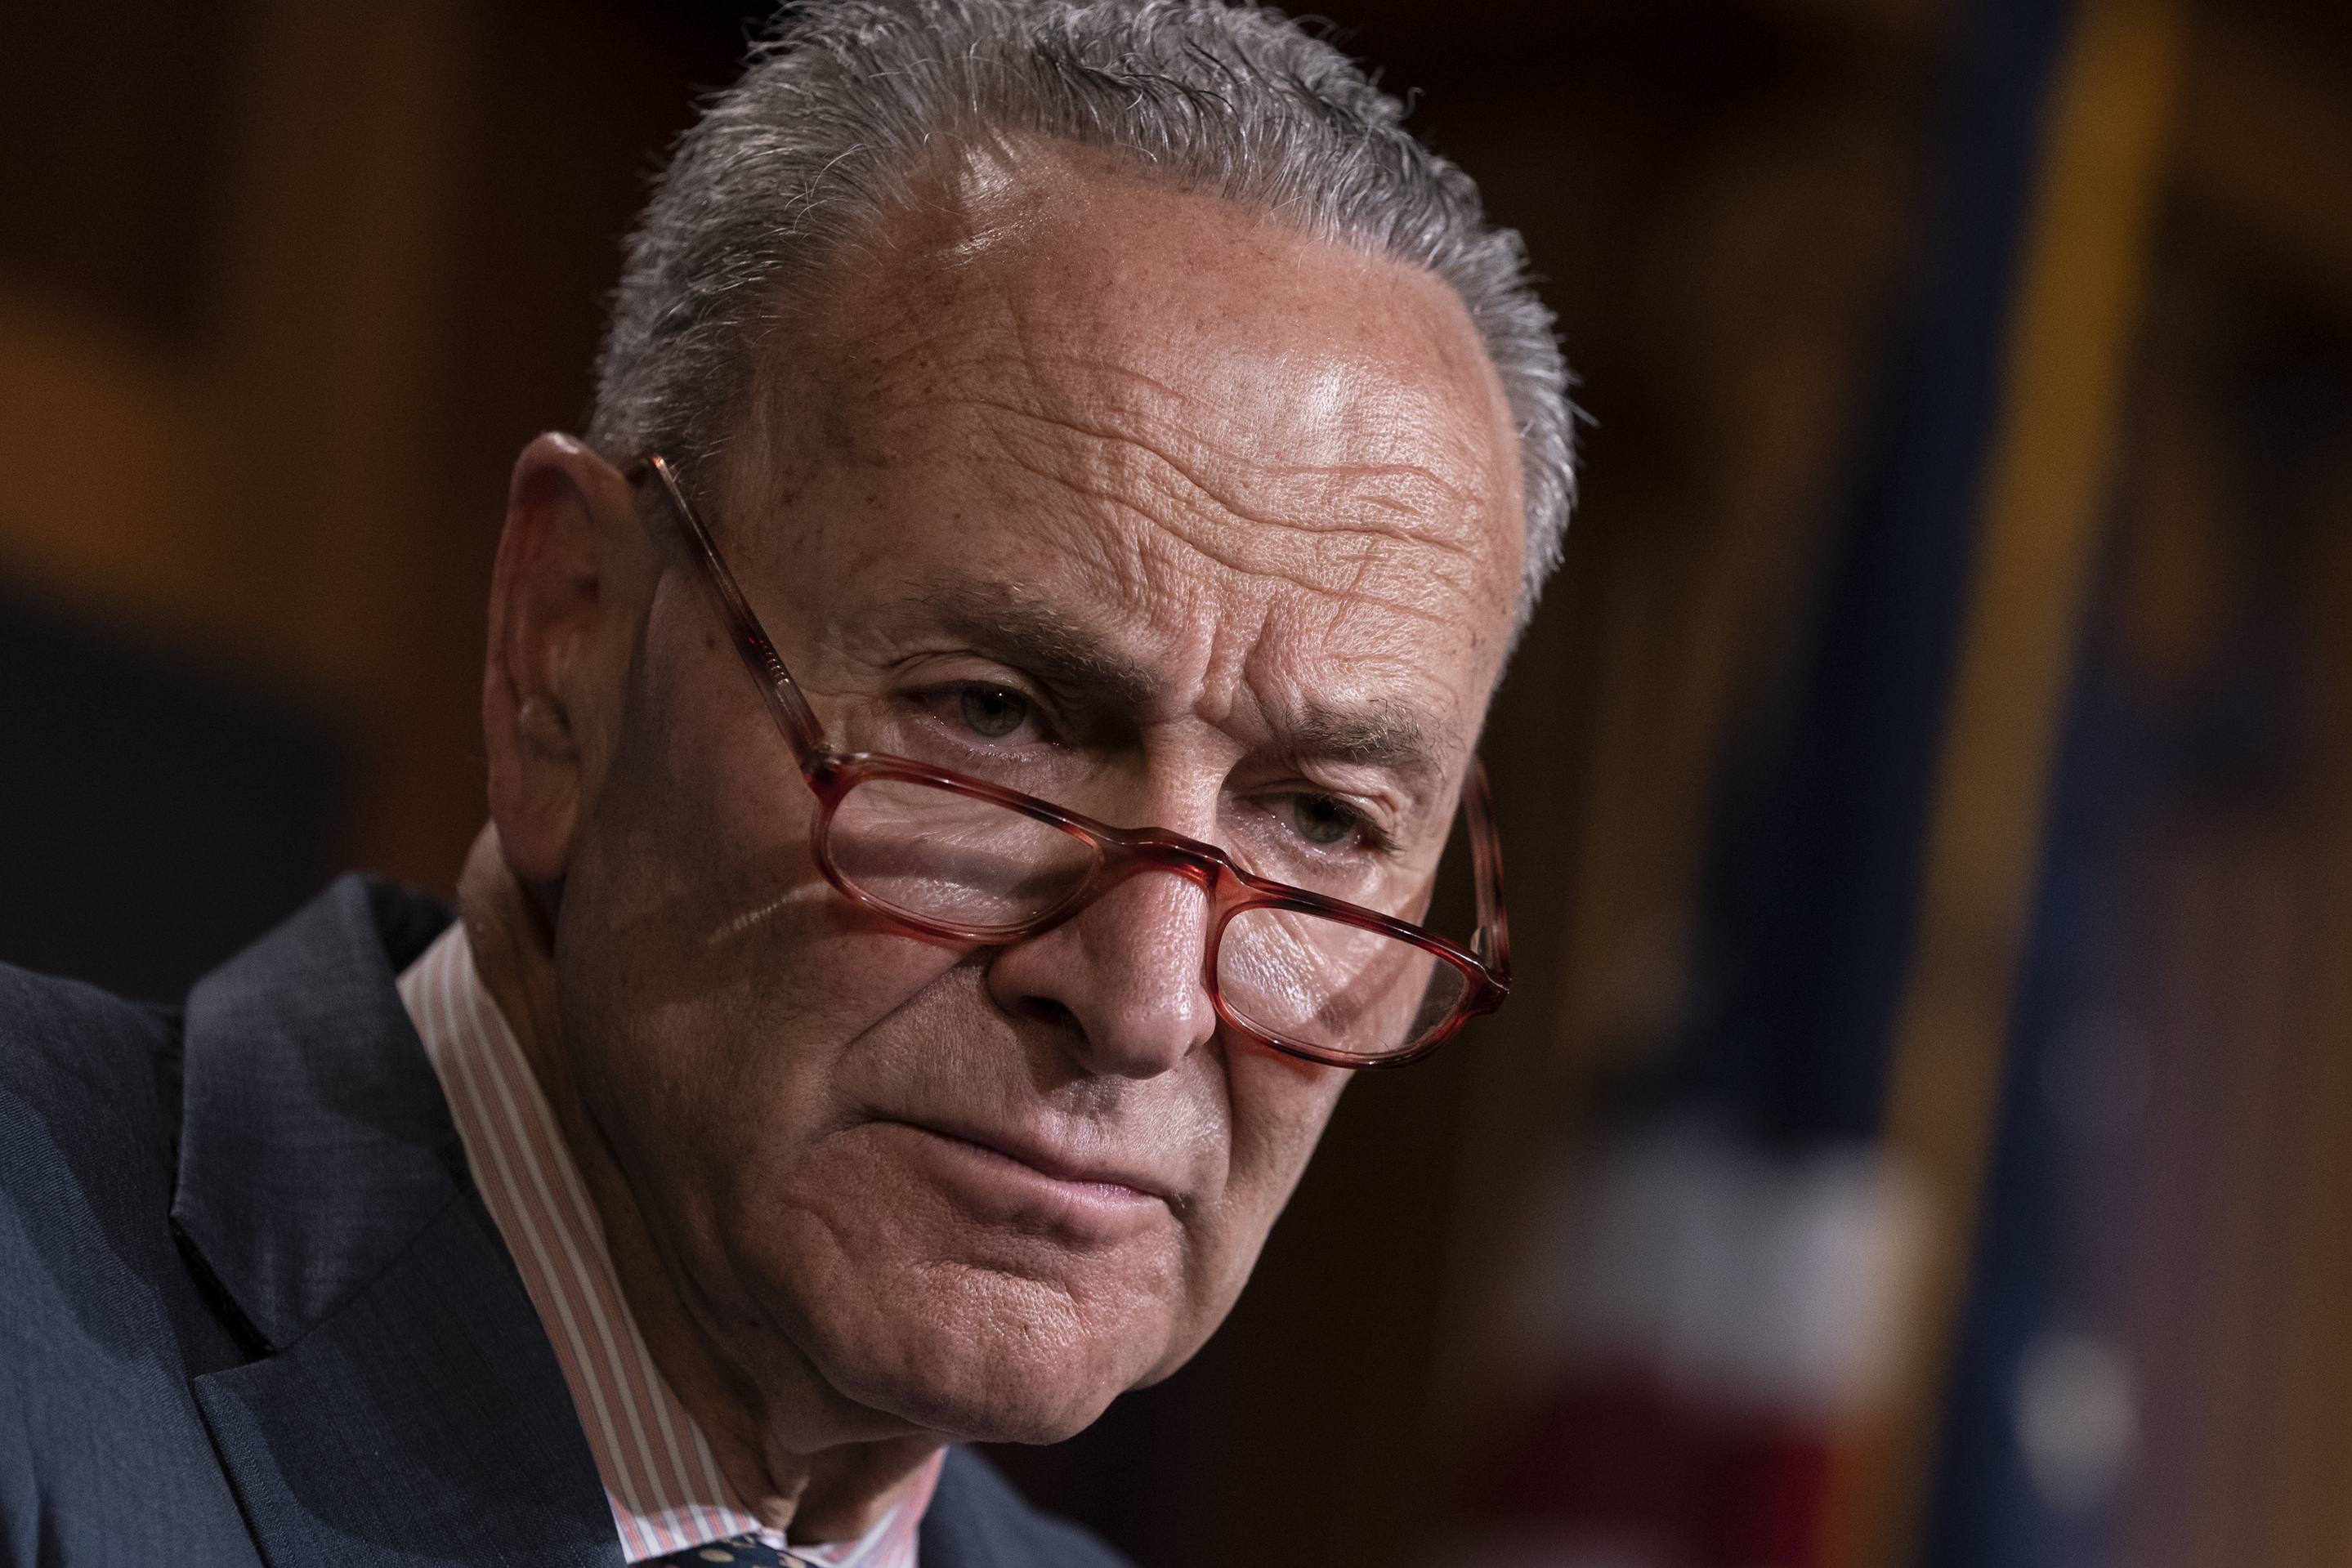 Westlake Legal Group AP19181137643665 Chuck Schumer wants FBI to sign off on body armor sales New York Post fox-news/us/personal-freedoms/second-amendment fox-news/tech/topics/fbi fox-news/person/chuck-schumer fnc/politics fnc d31ff31a-7f88-5b43-985e-283c9e7c10a0 article